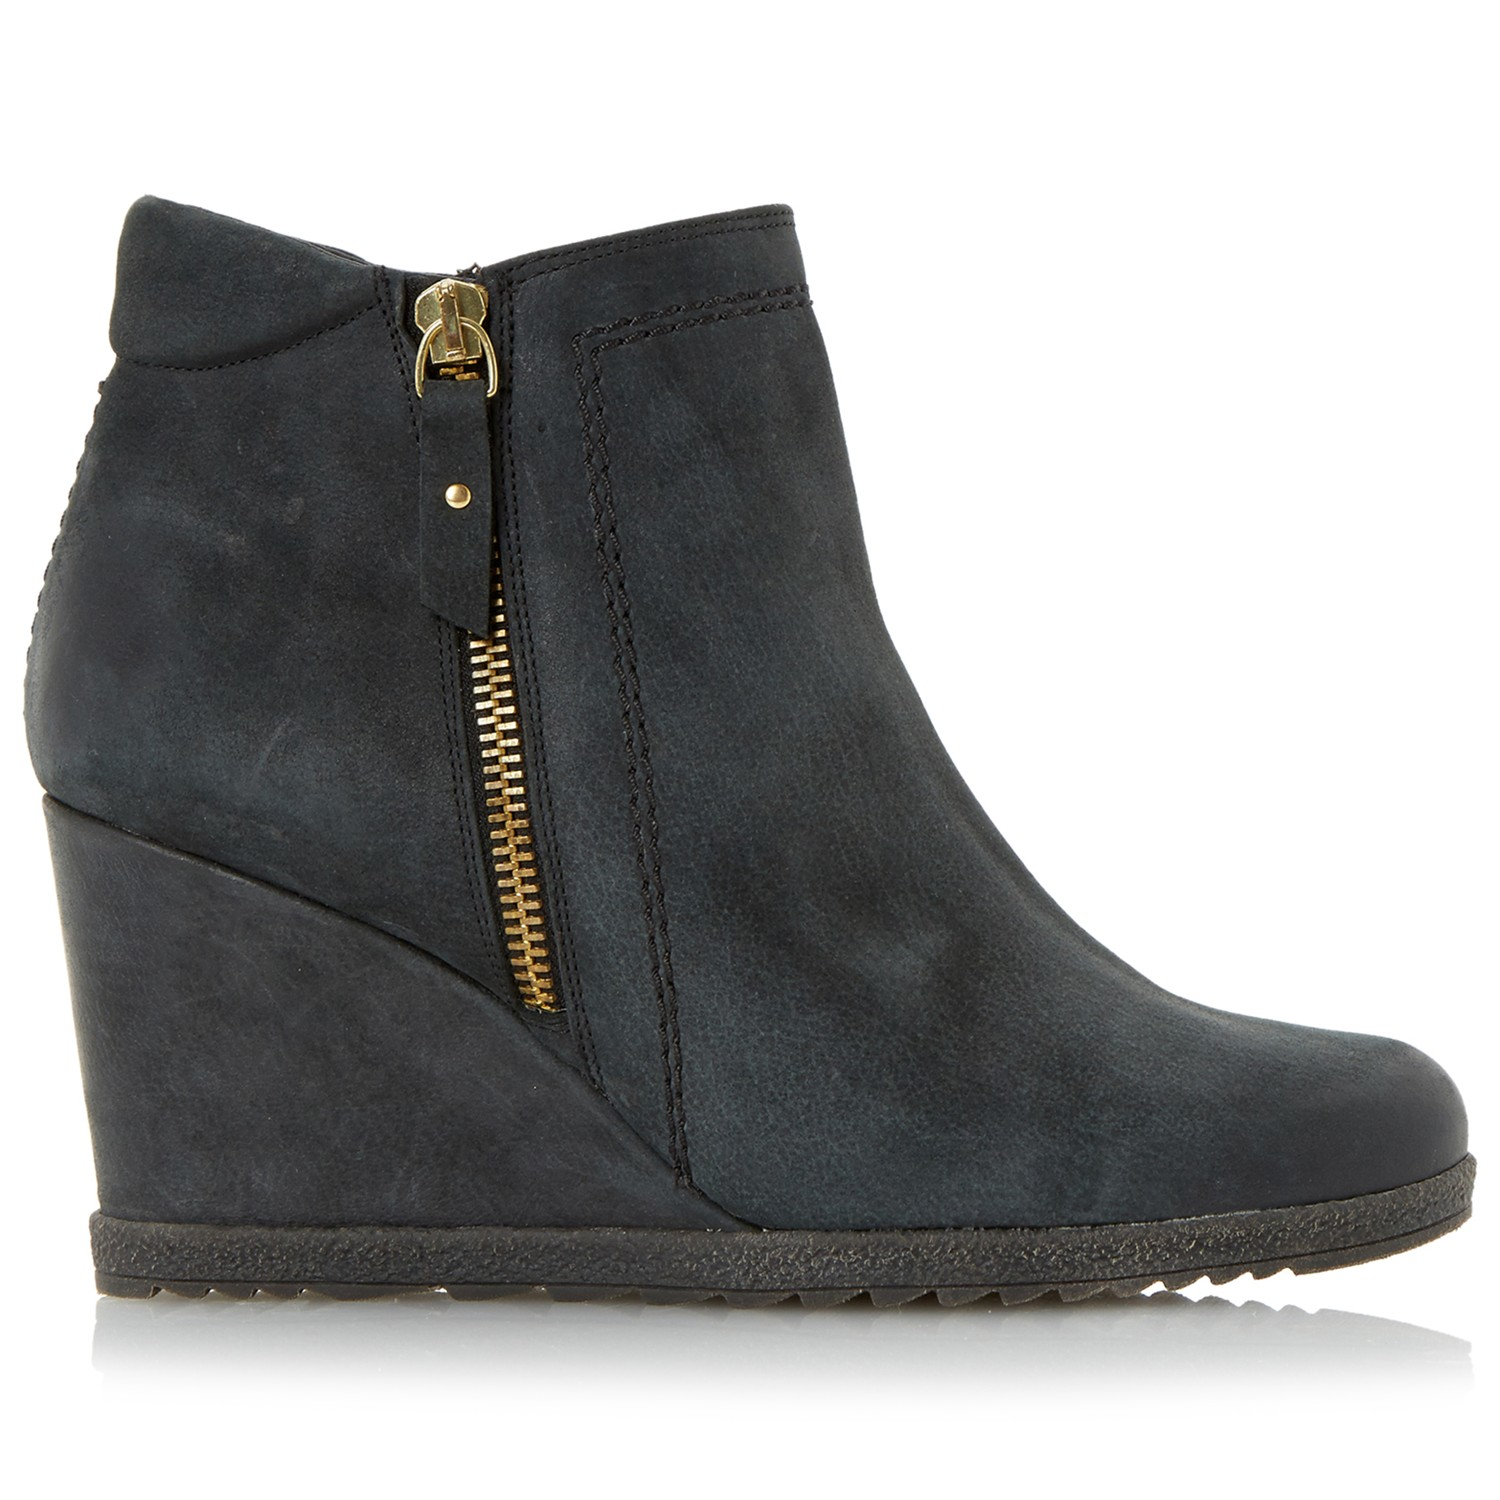 2cbf3ab3af4 Dune Pacino Side Zip Wedge Ankle Boots in Black - Lyst